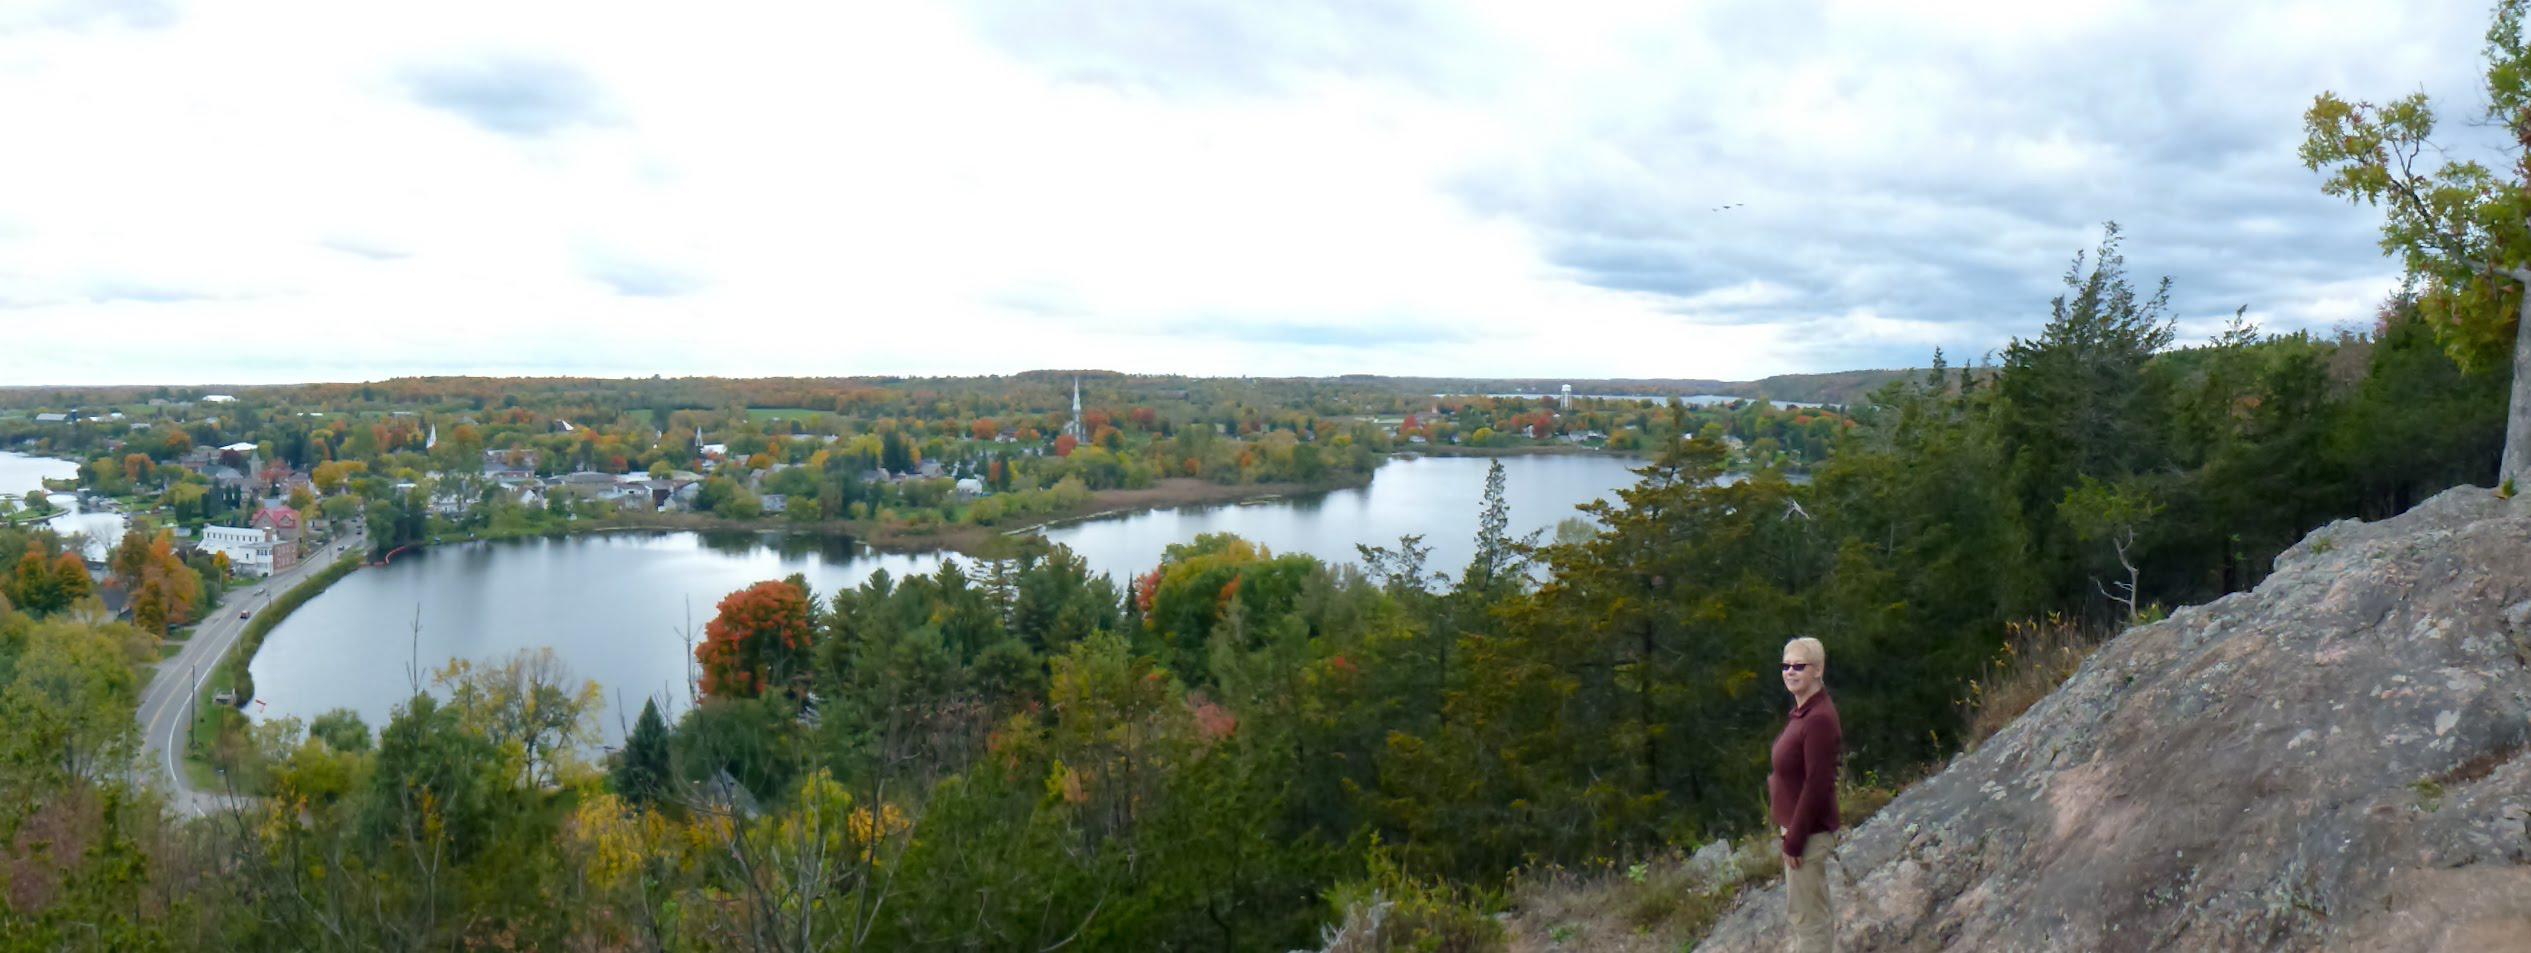 From the Lookout at Foley Mountain